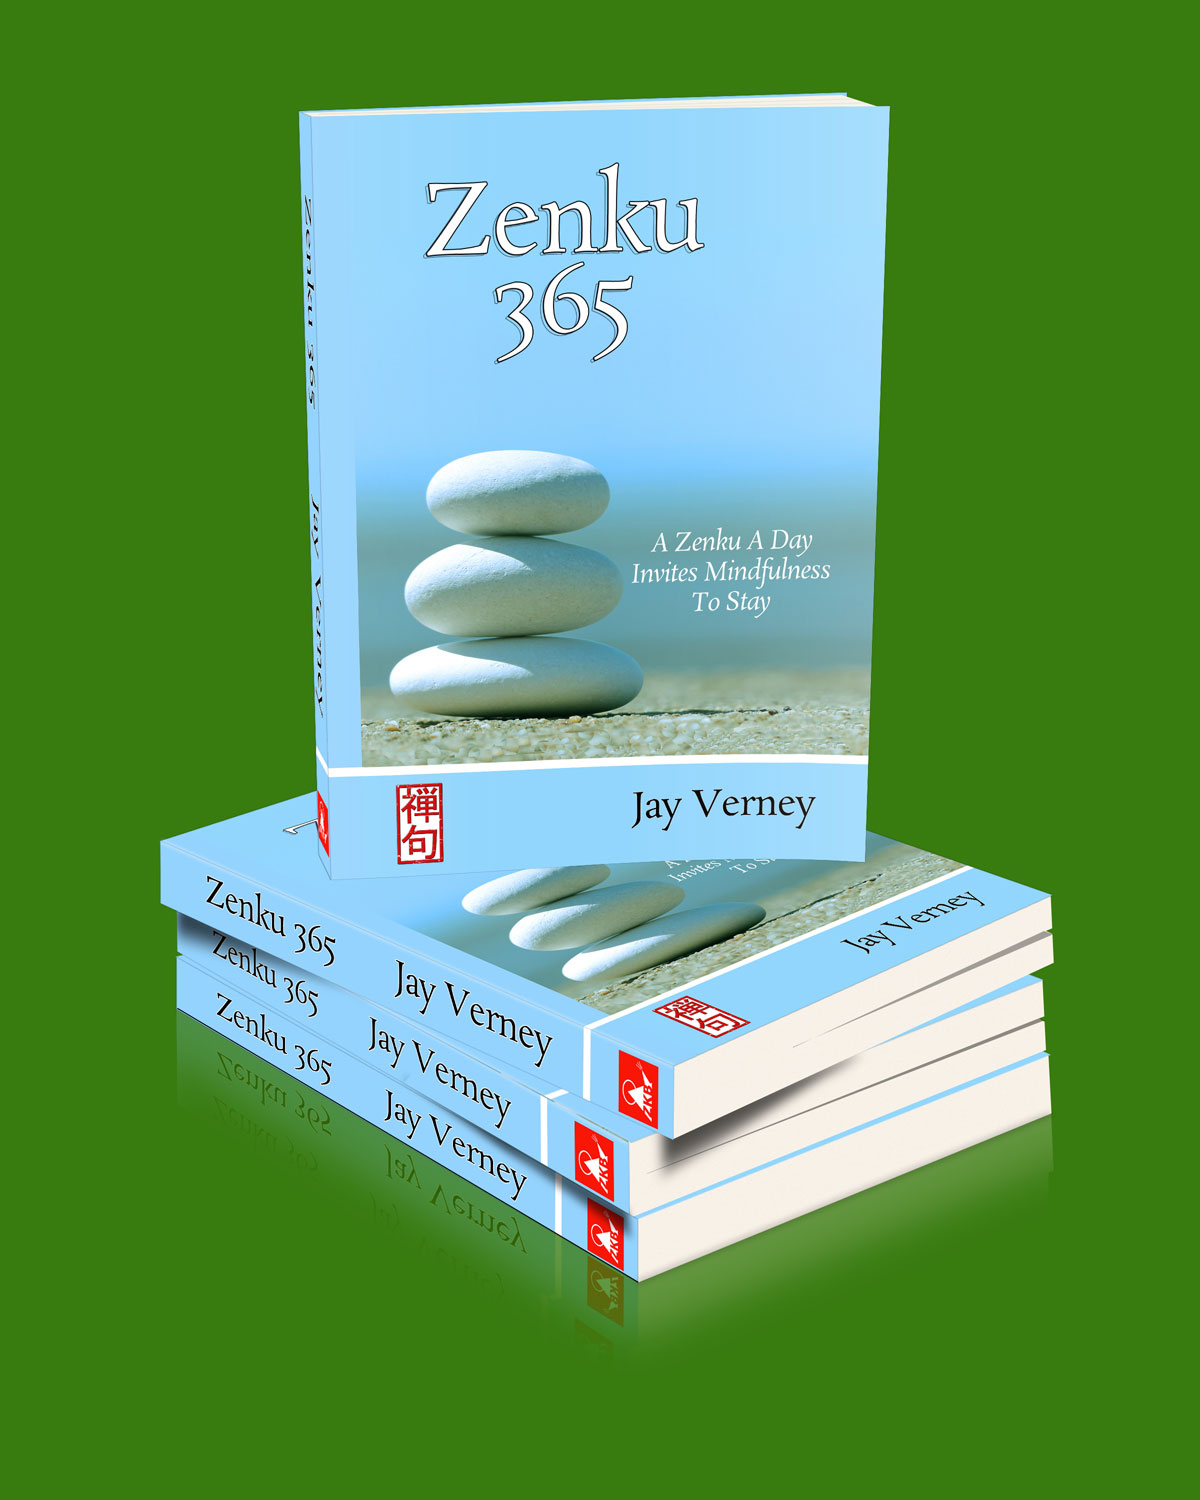 Book cover image of Zenku 365 by Jay Verney